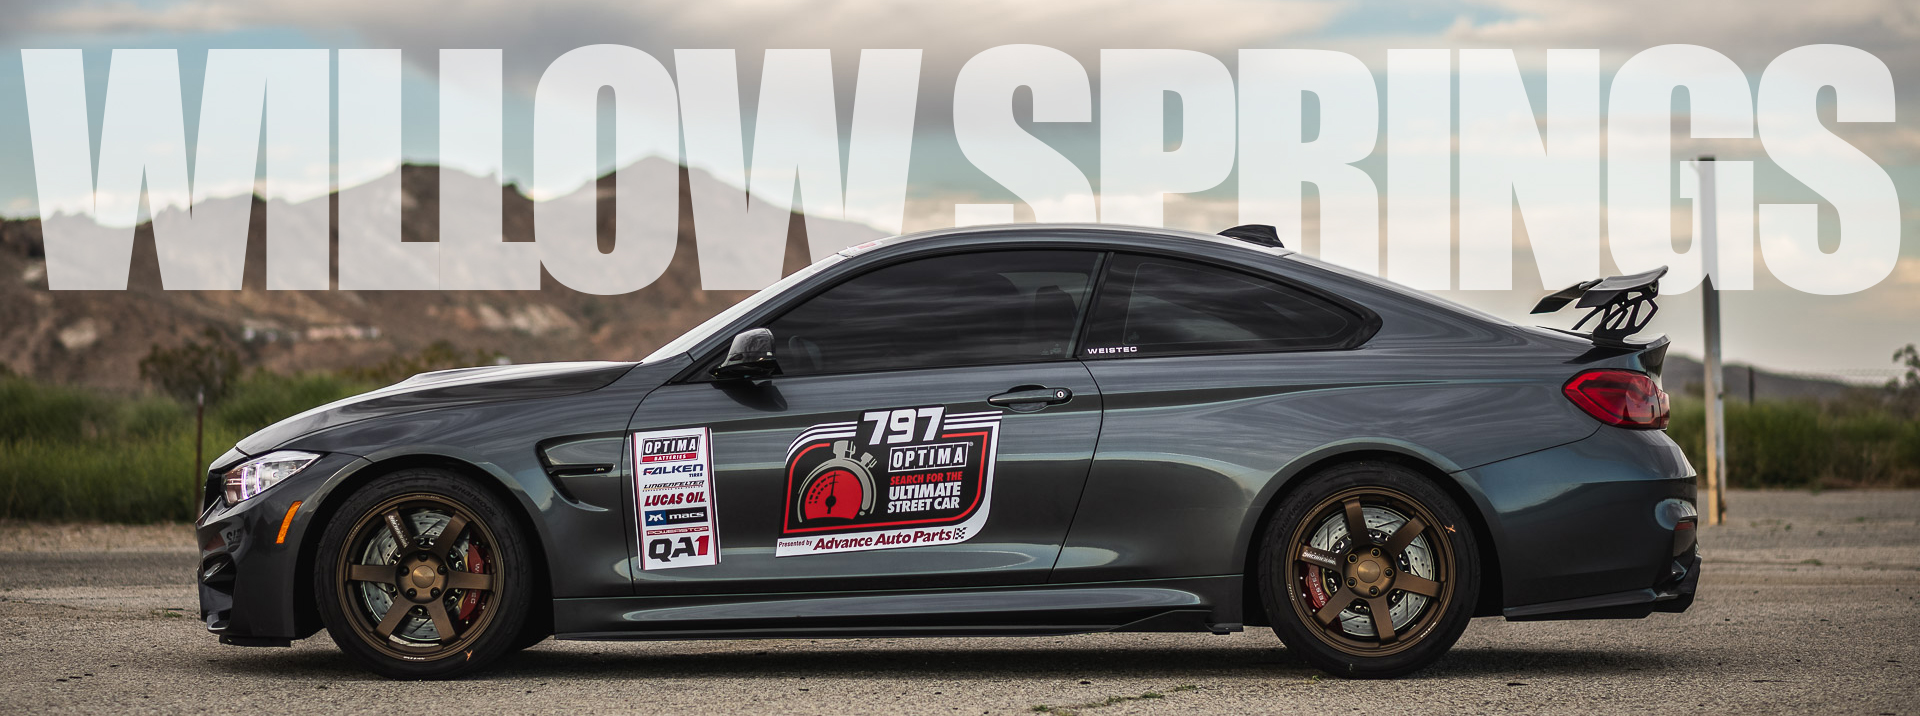 Weistec BMW M4 | Willow Springs